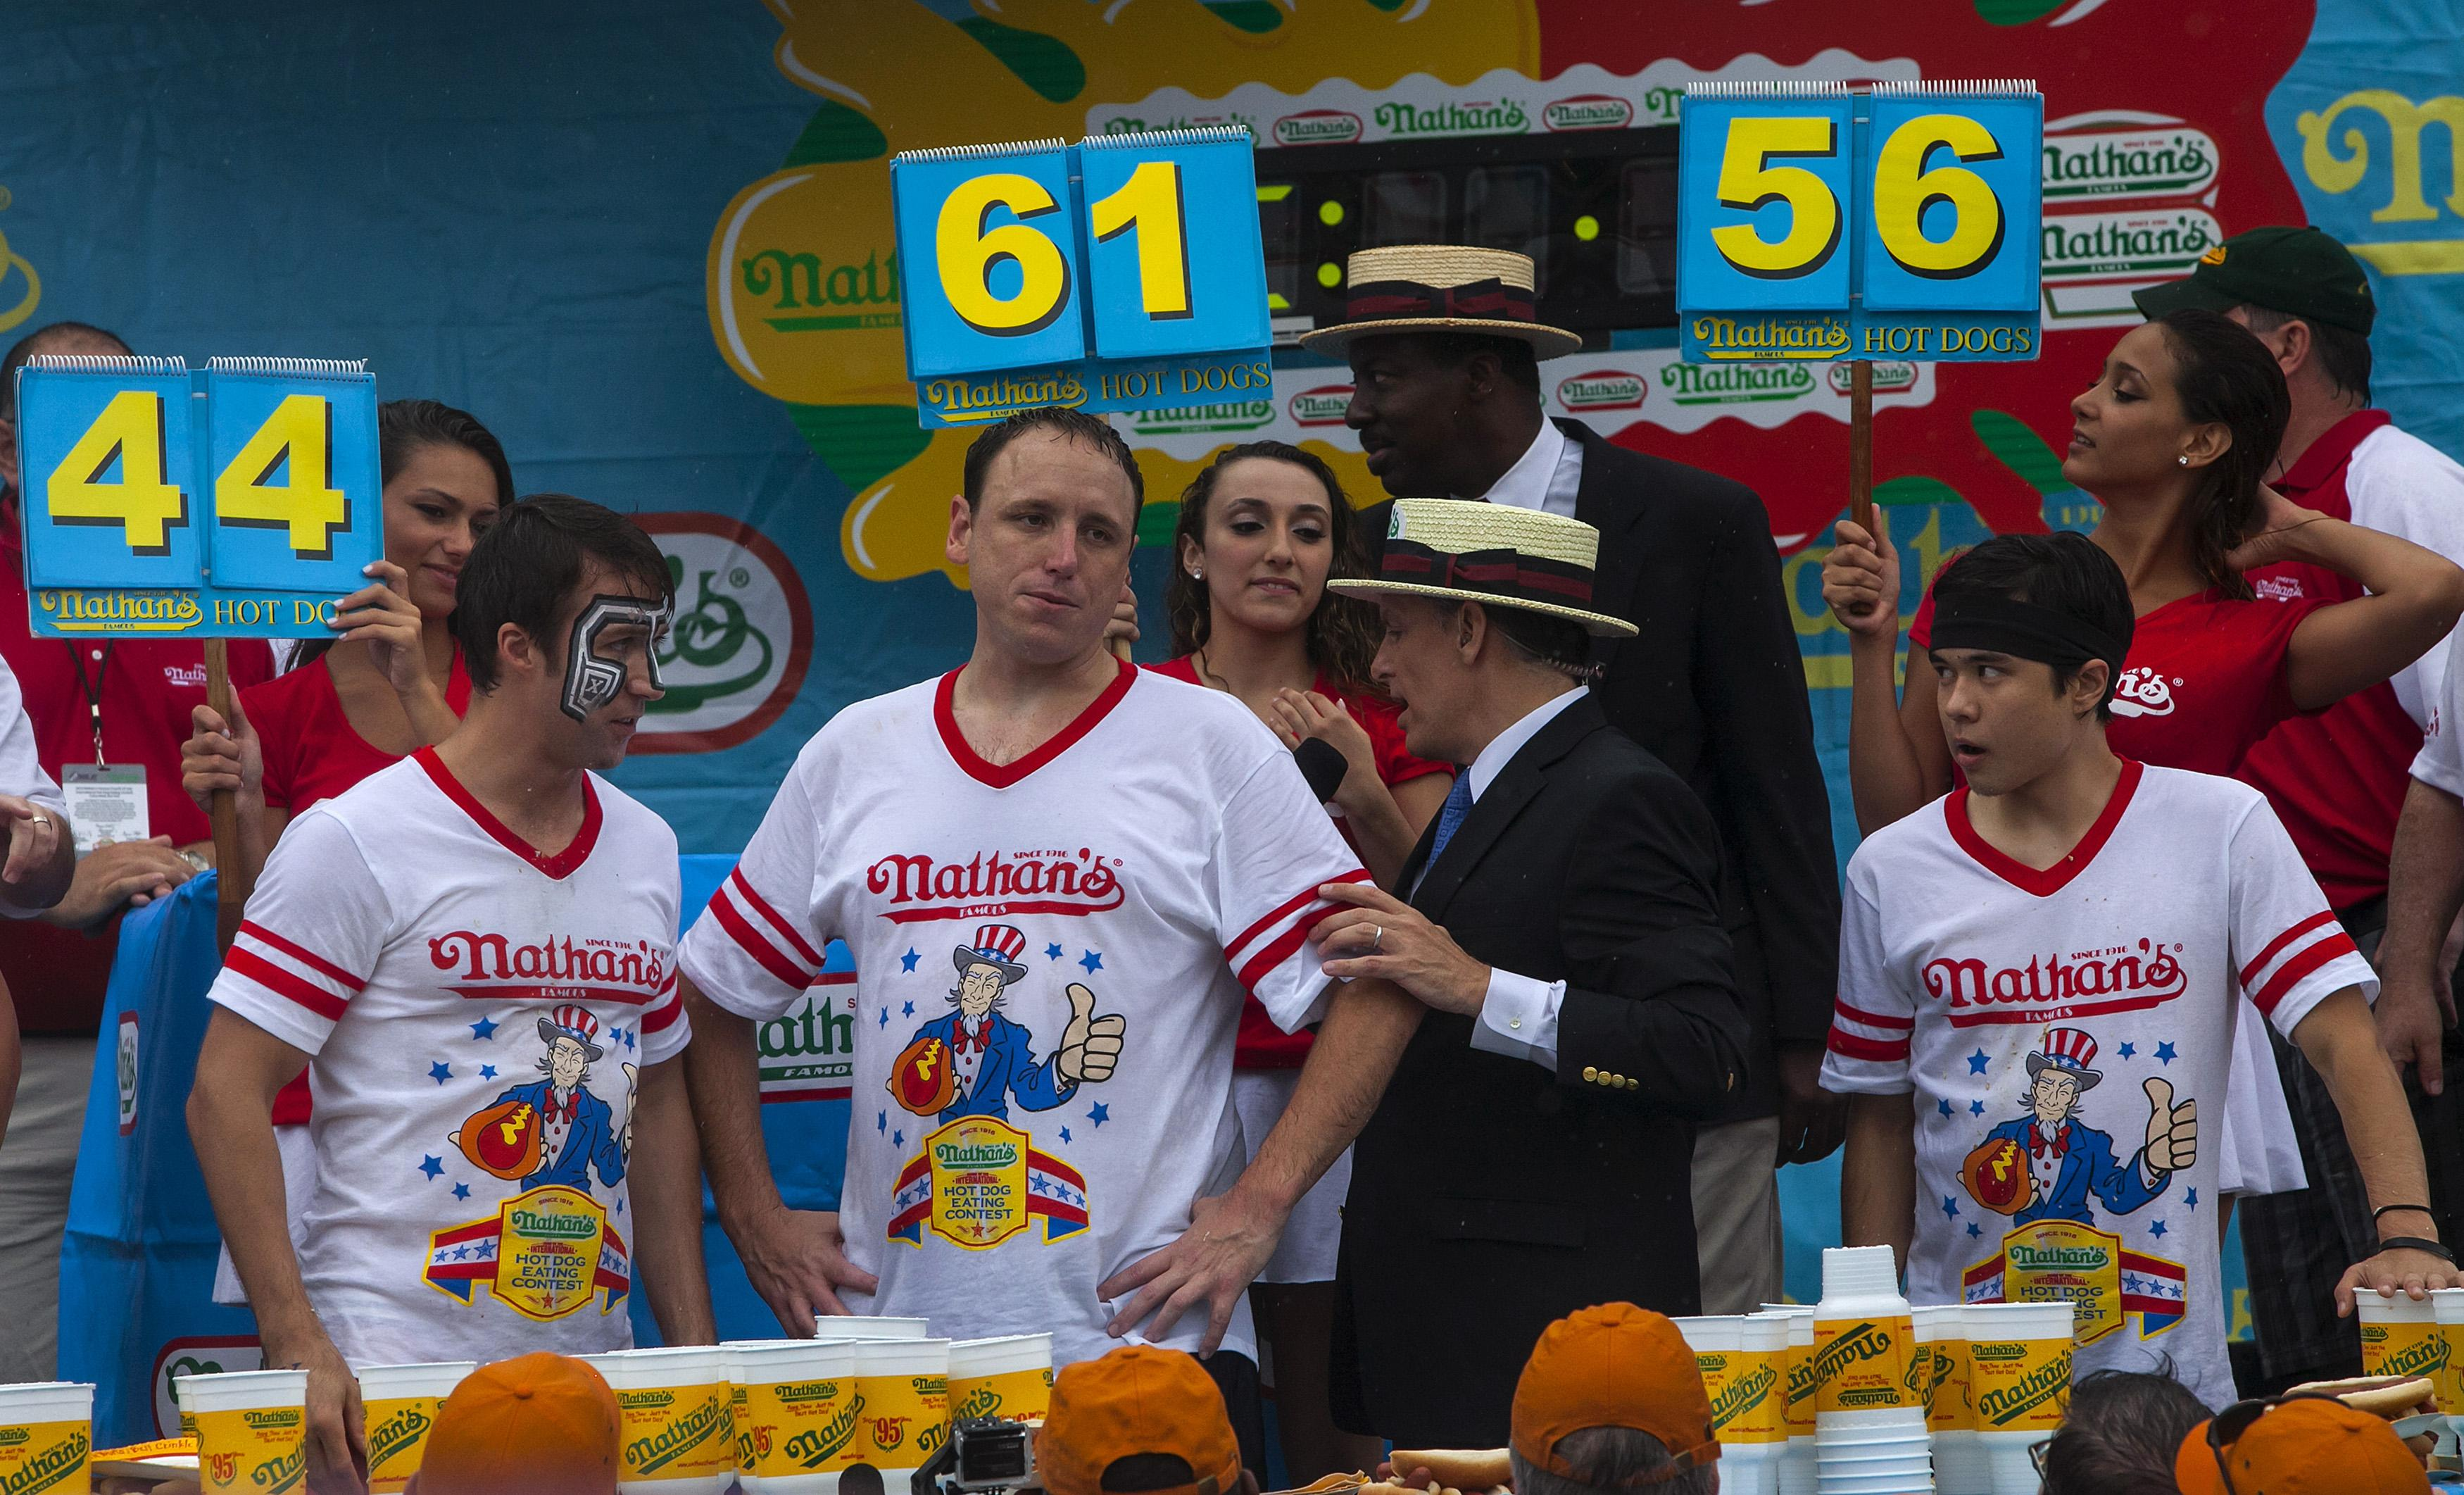 Nathan's Hot Dog Contest